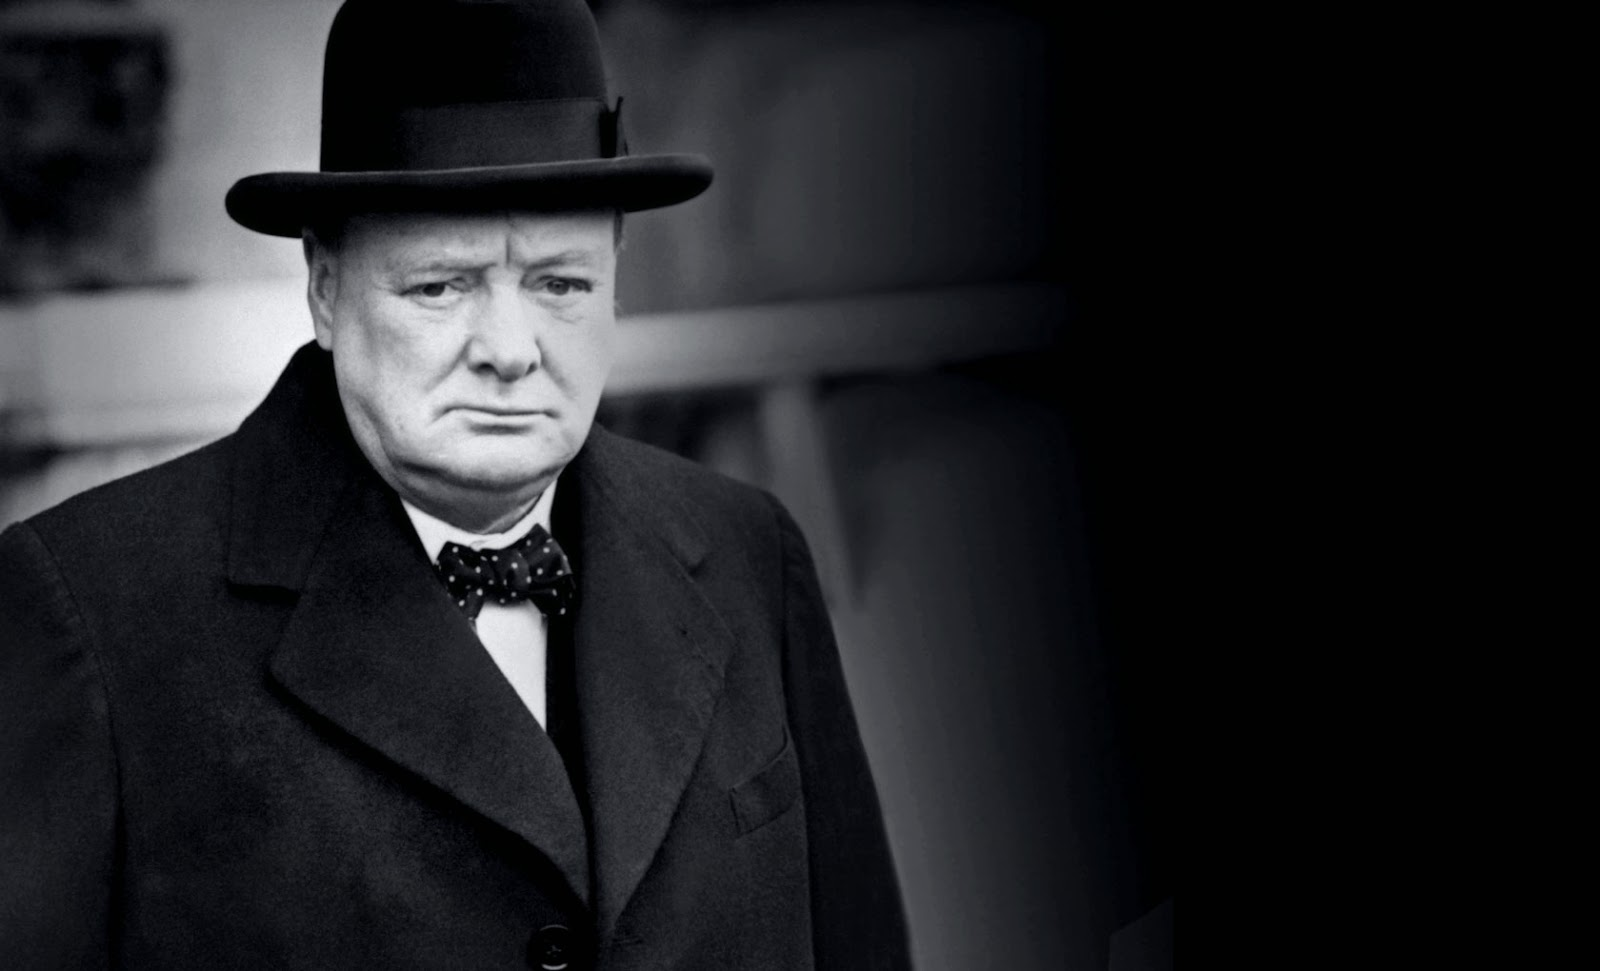 http://www.bankslyon.co.uk/blog/rolex-icons-winston-churchill